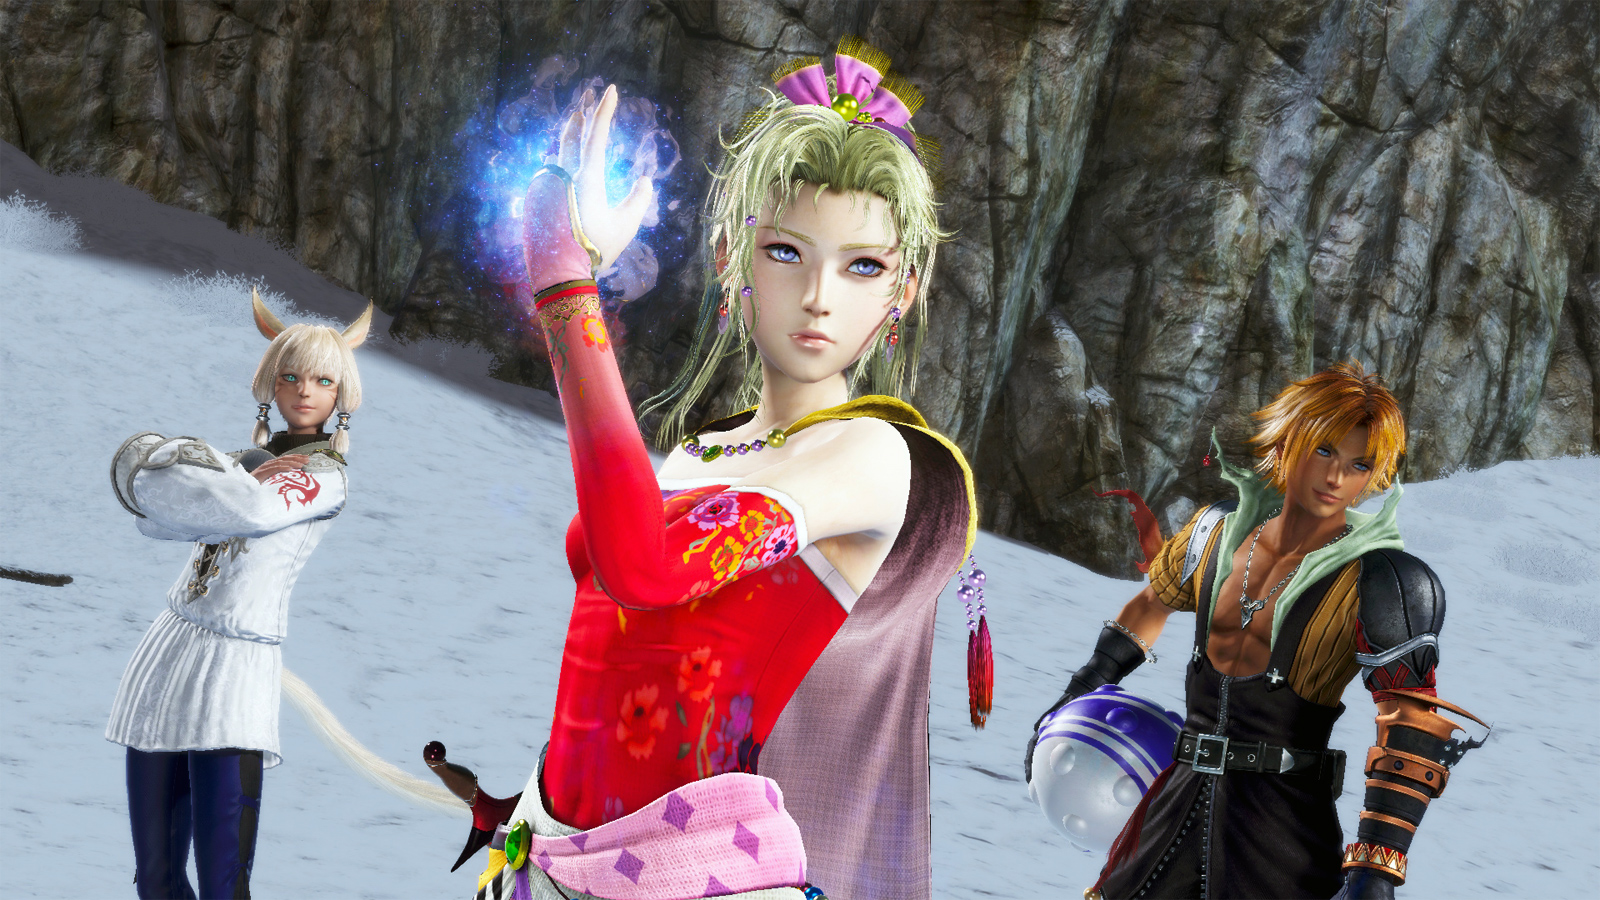 'Dissidia NT' tries to add MMORPG dynamics to a fighting game